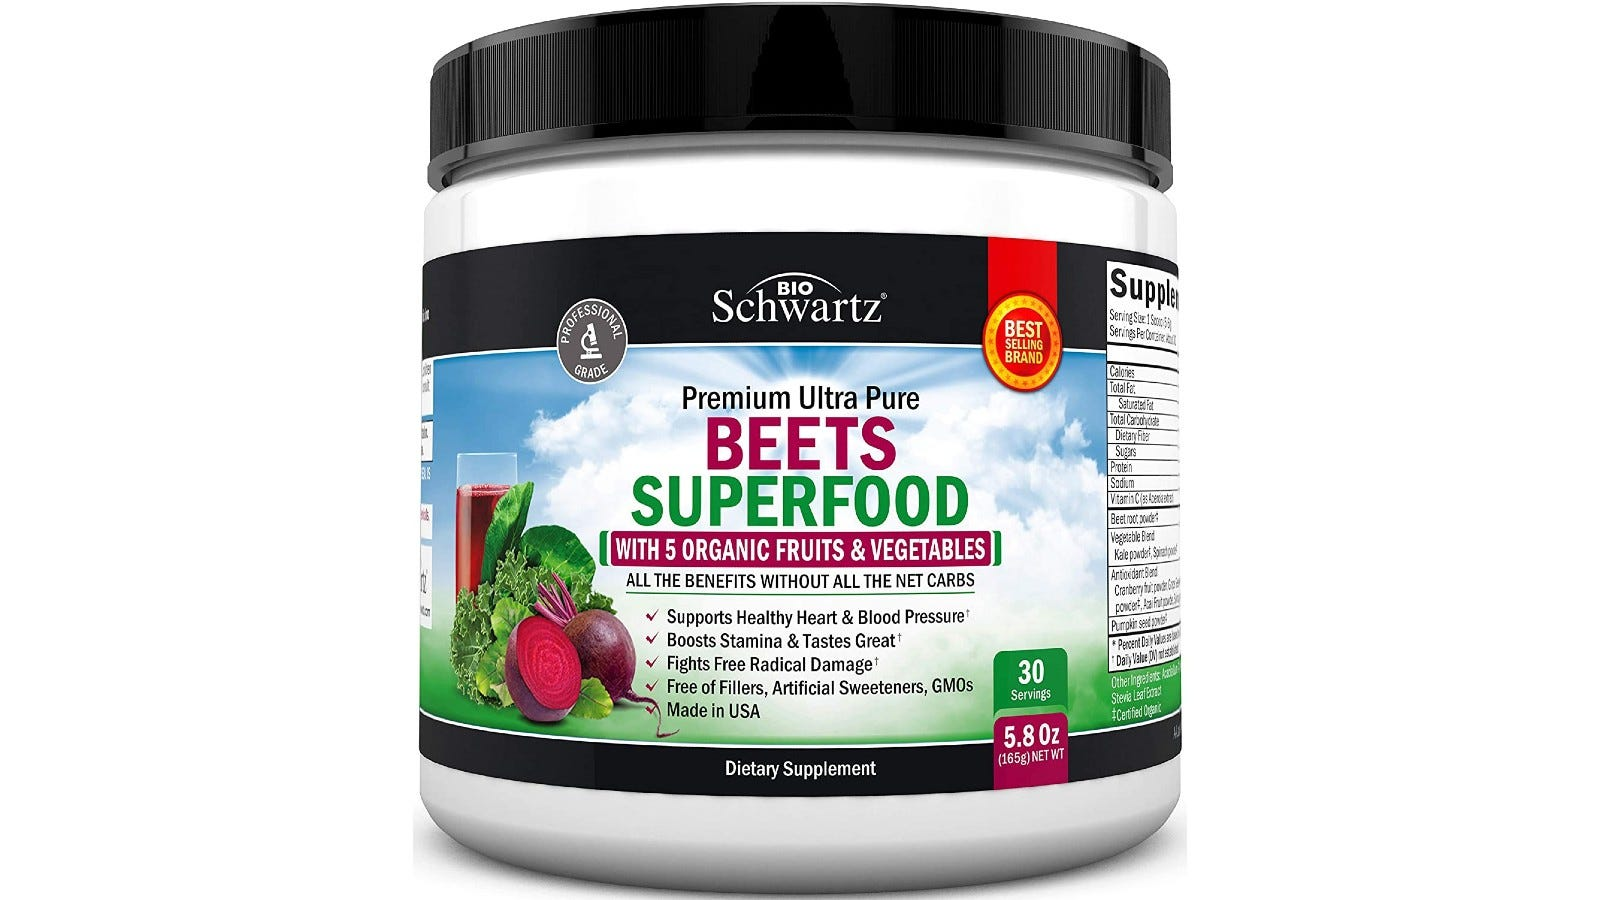 BioSchwartz Beets Superfood powder with organic fruits and vegetables